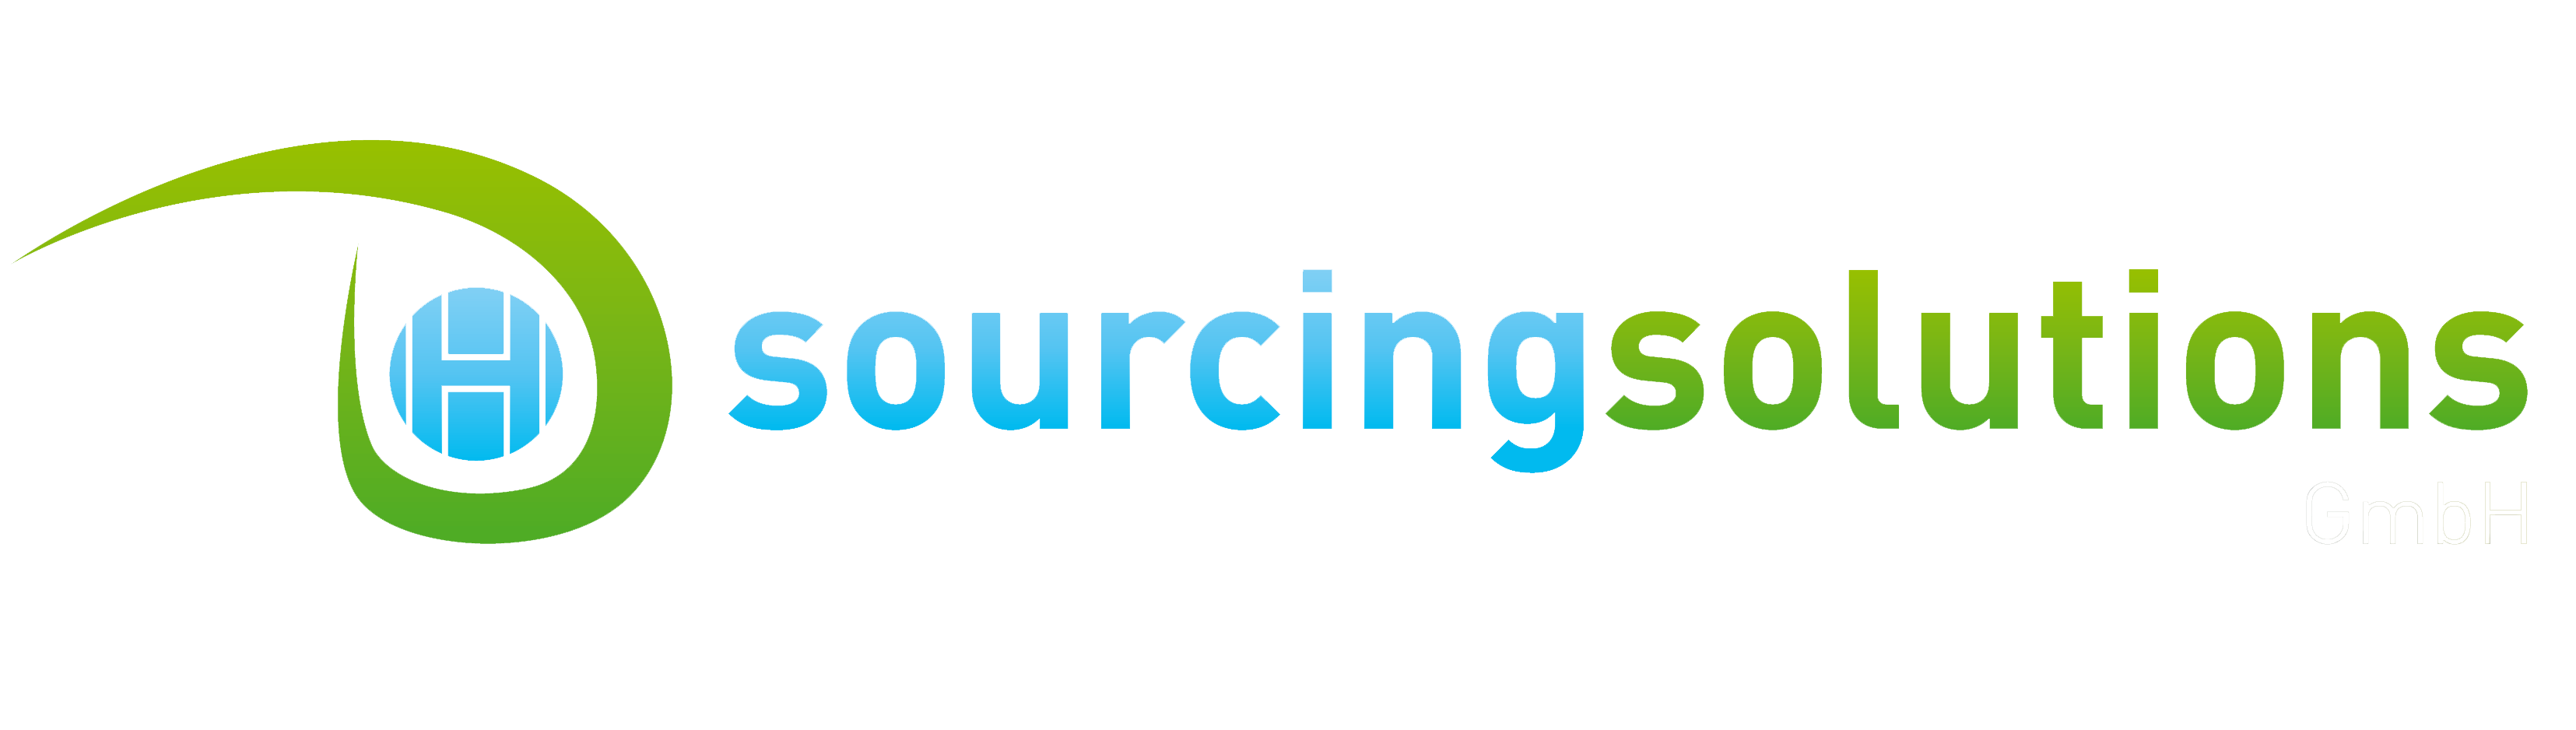 HD sourcing solutions GmbH